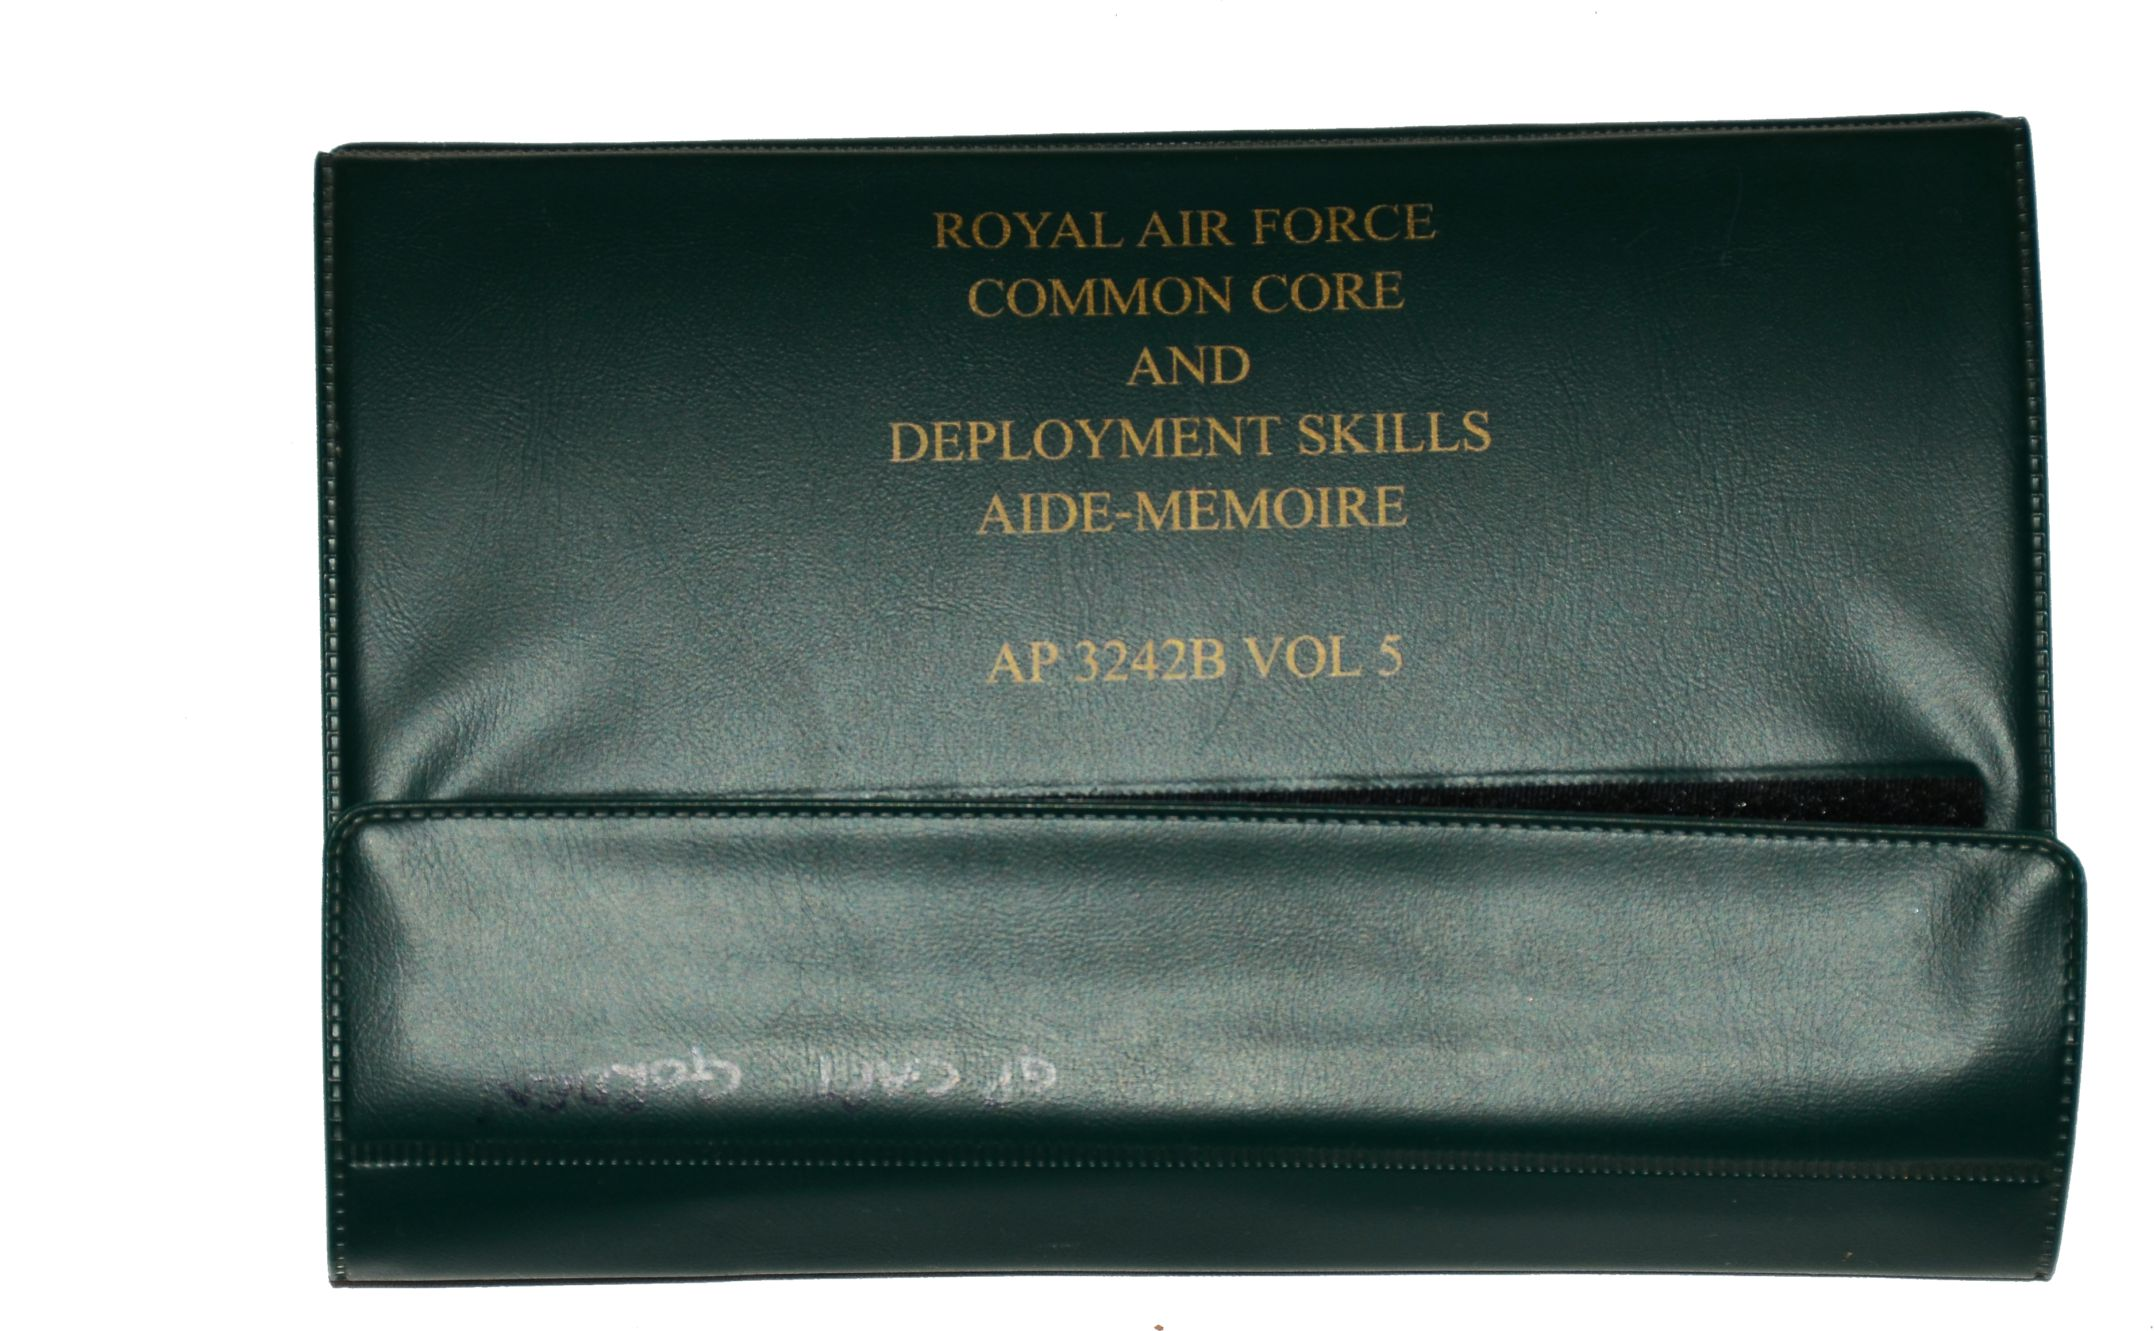 RAF COMMON CORE AND DEPLOYMENT SKILLS